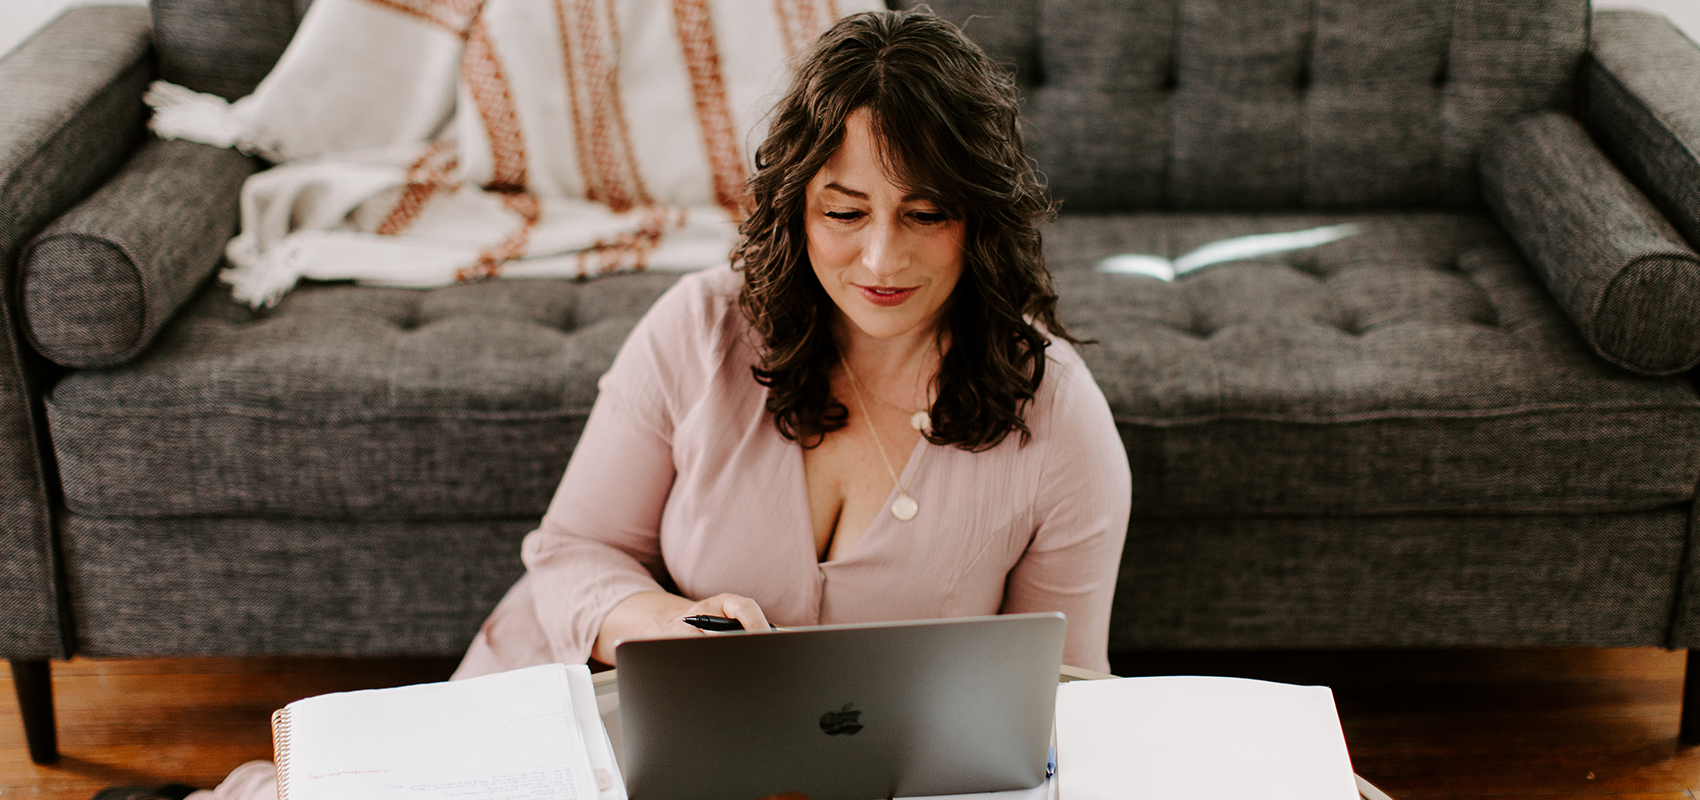 Melody, a brunette woman in a dusty pink dress, sits at her computer working